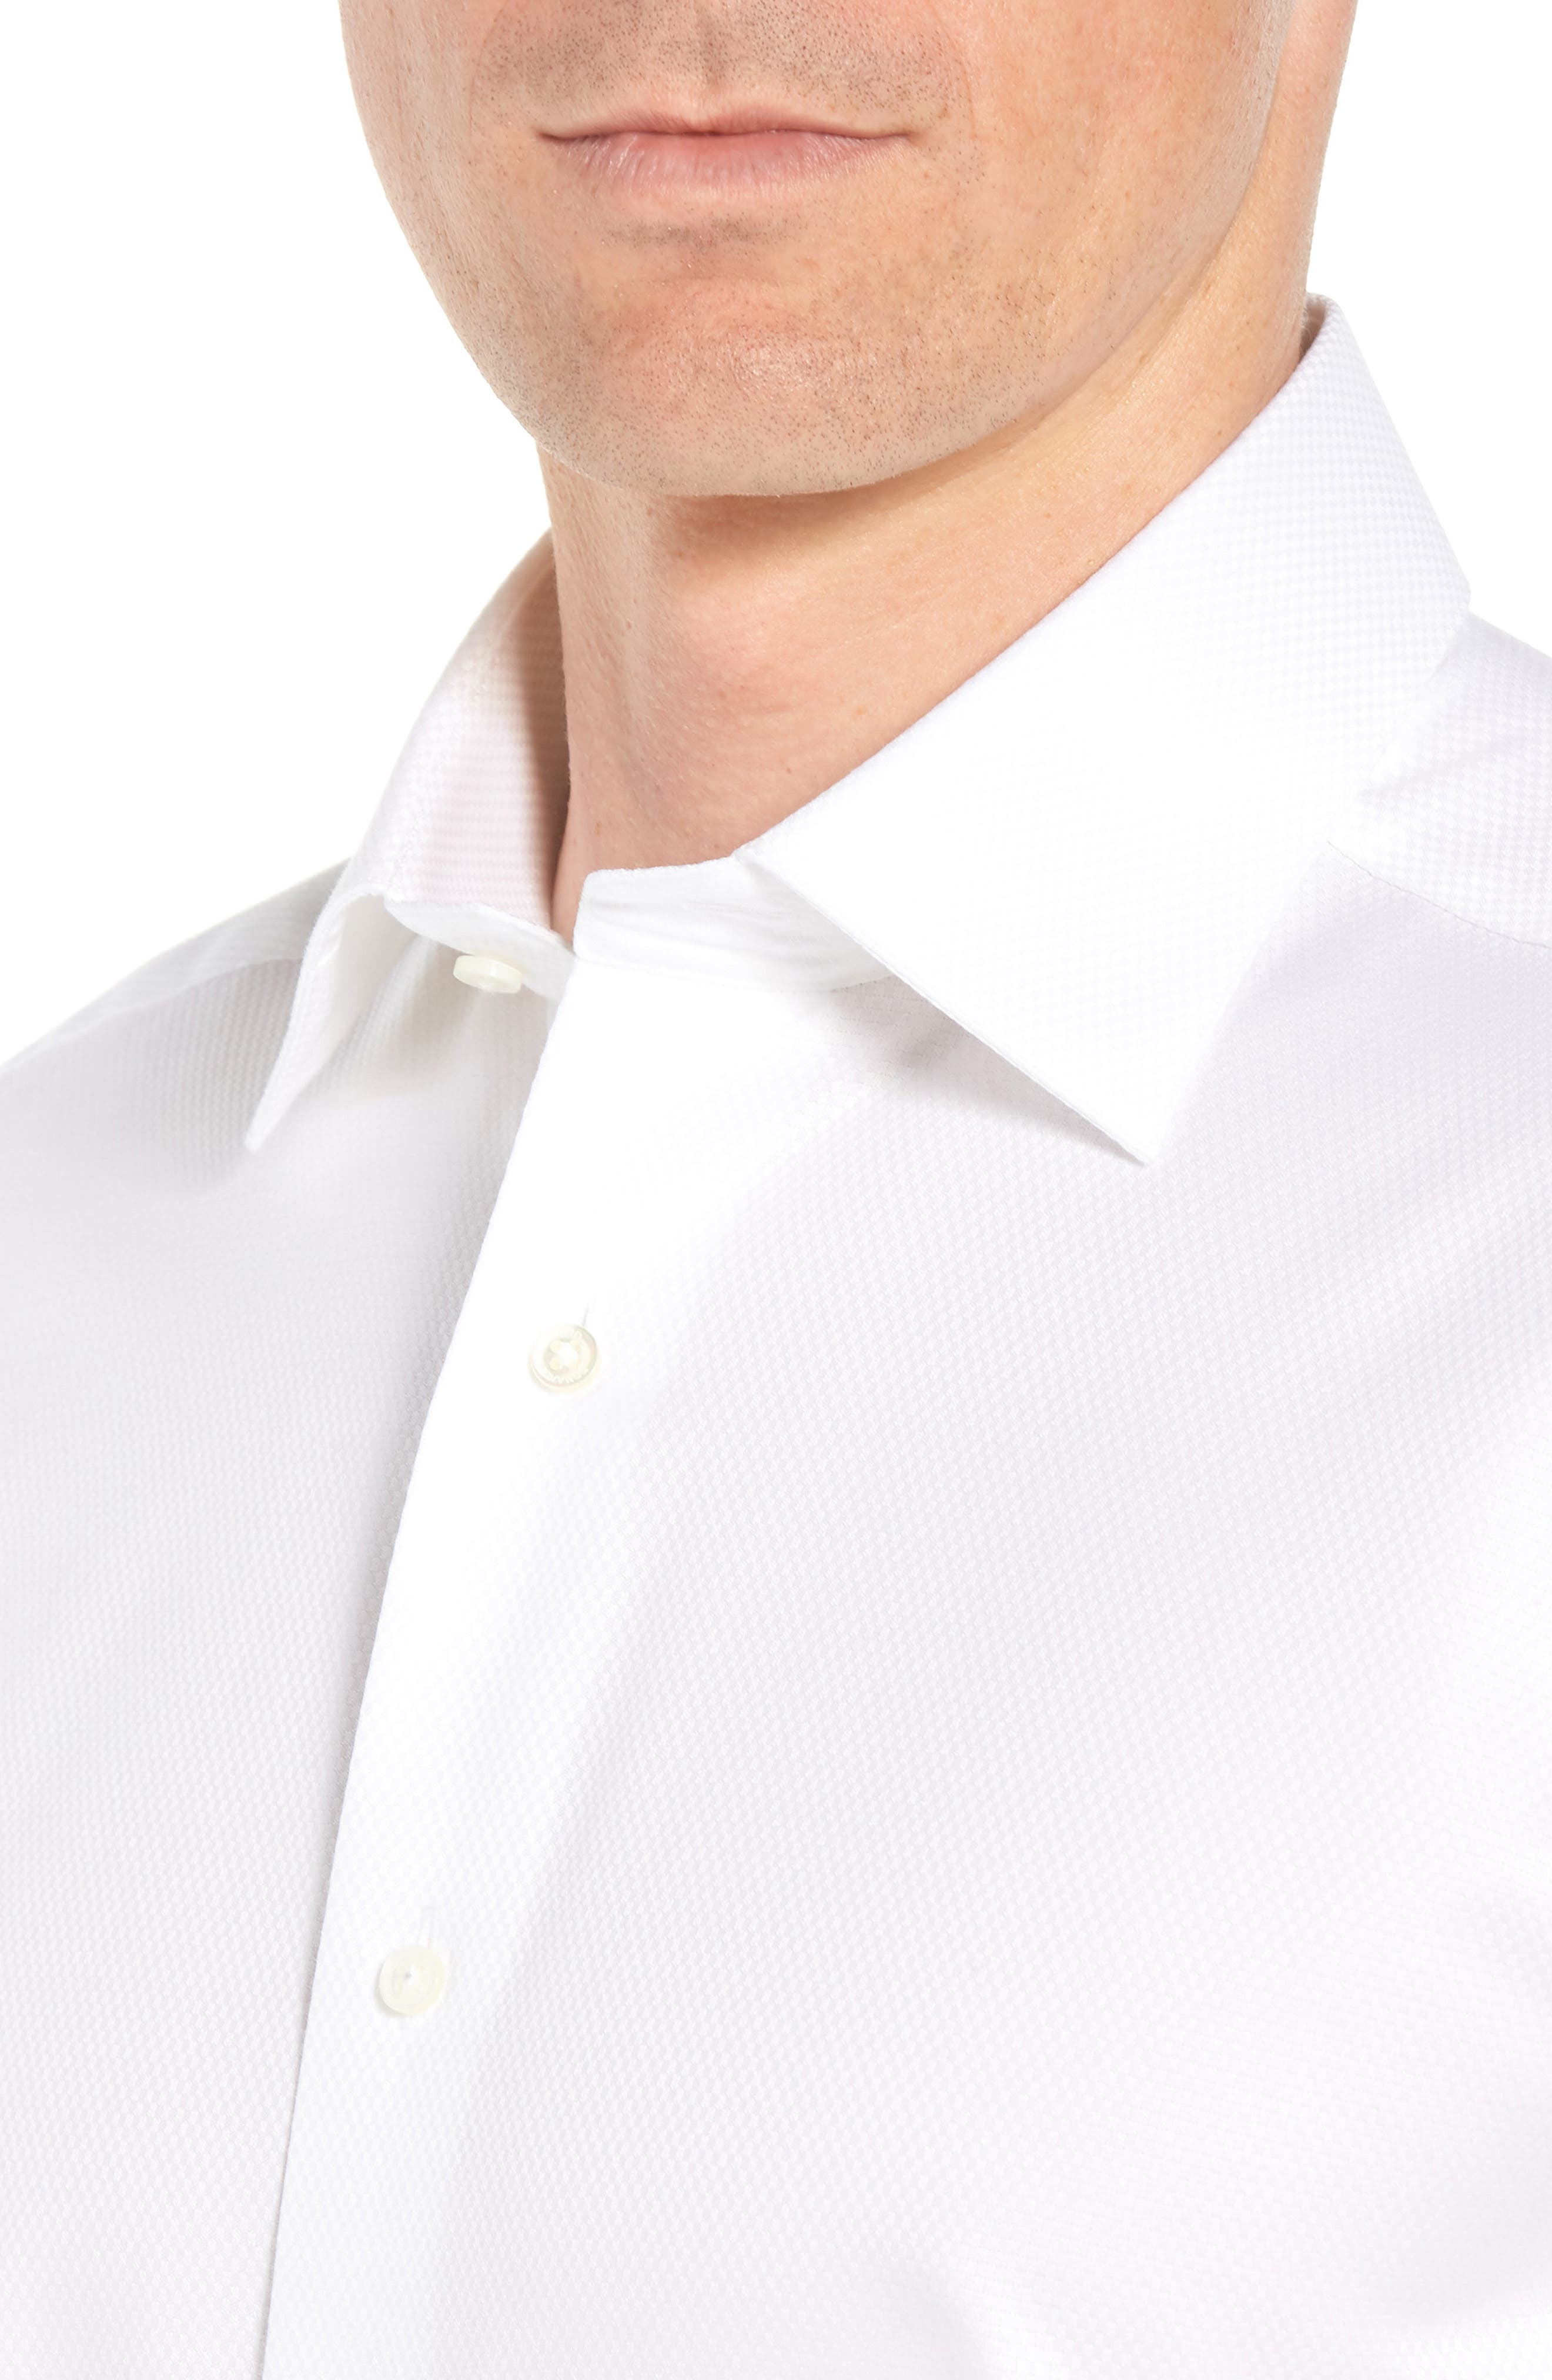 DAVID DONAHUE, Regular Fit Solid French Cuff Tuxedo Shirt, Alternate thumbnail 2, color, WHITE / WHITE